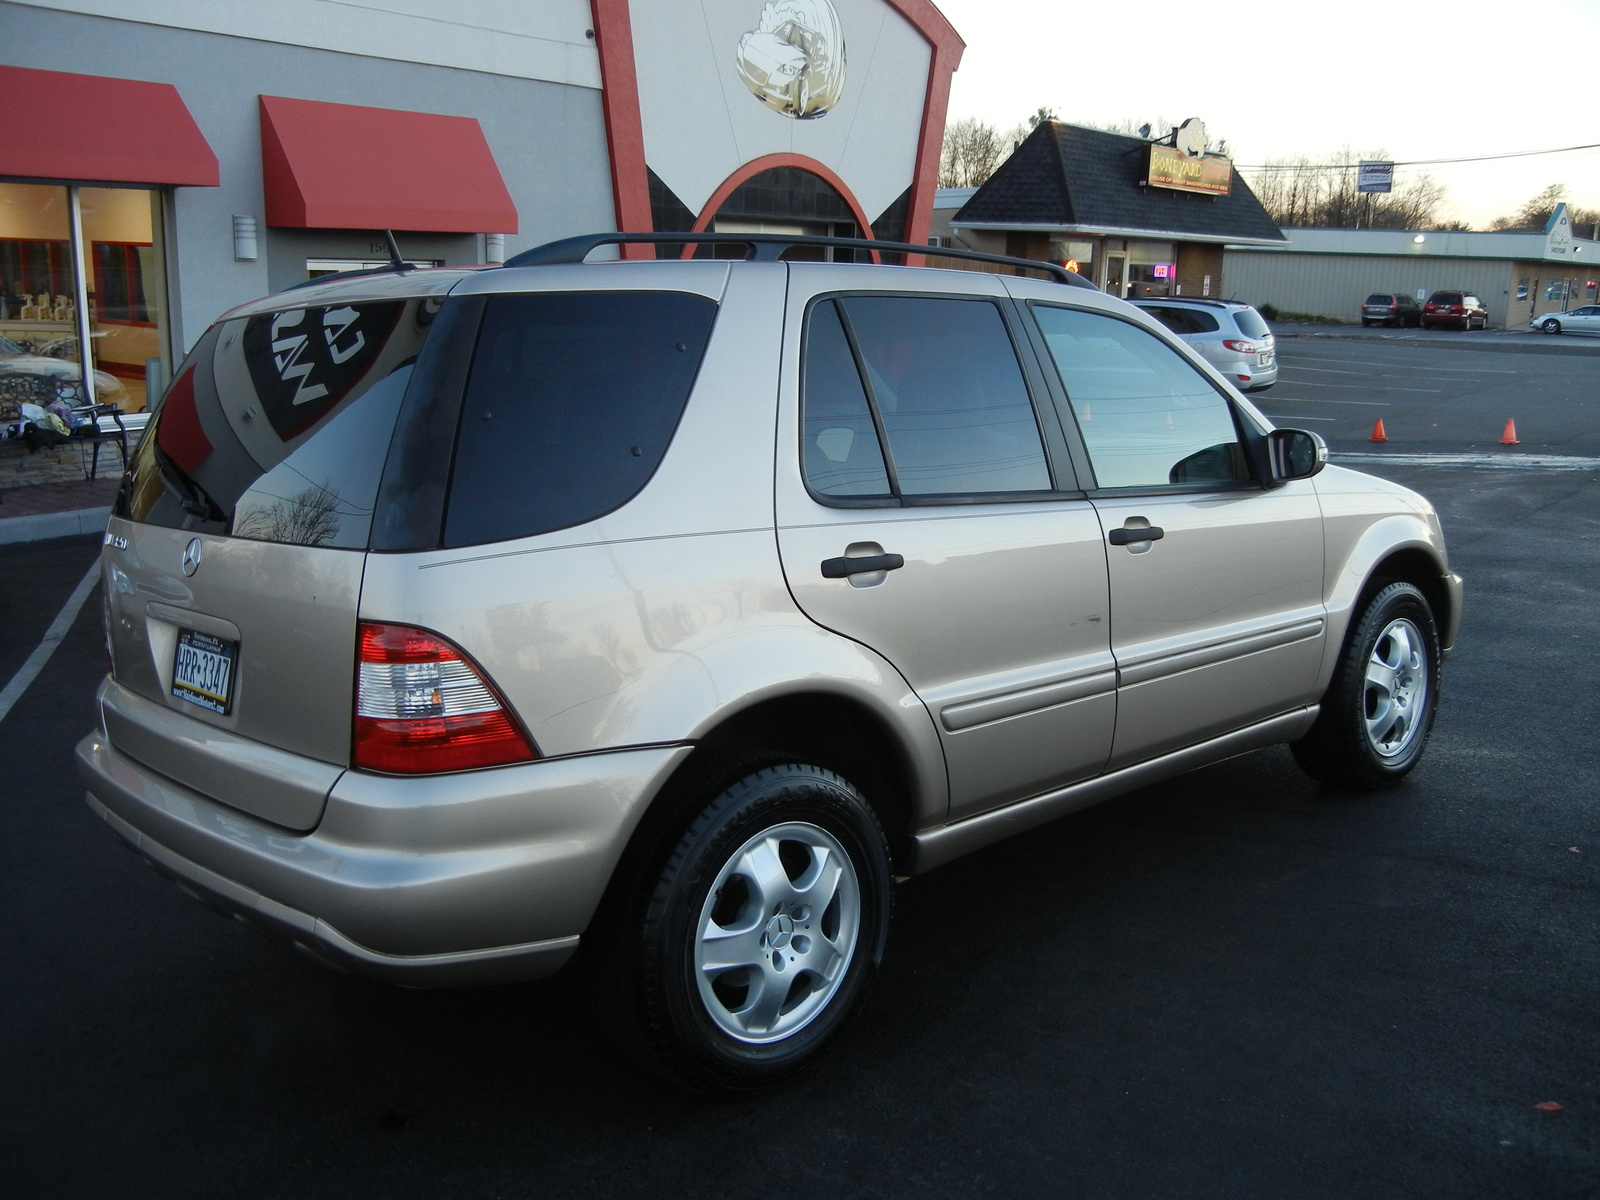 2003 mercedes benz m class pictures cargurus for 2003 mercedes benz ml320 problems